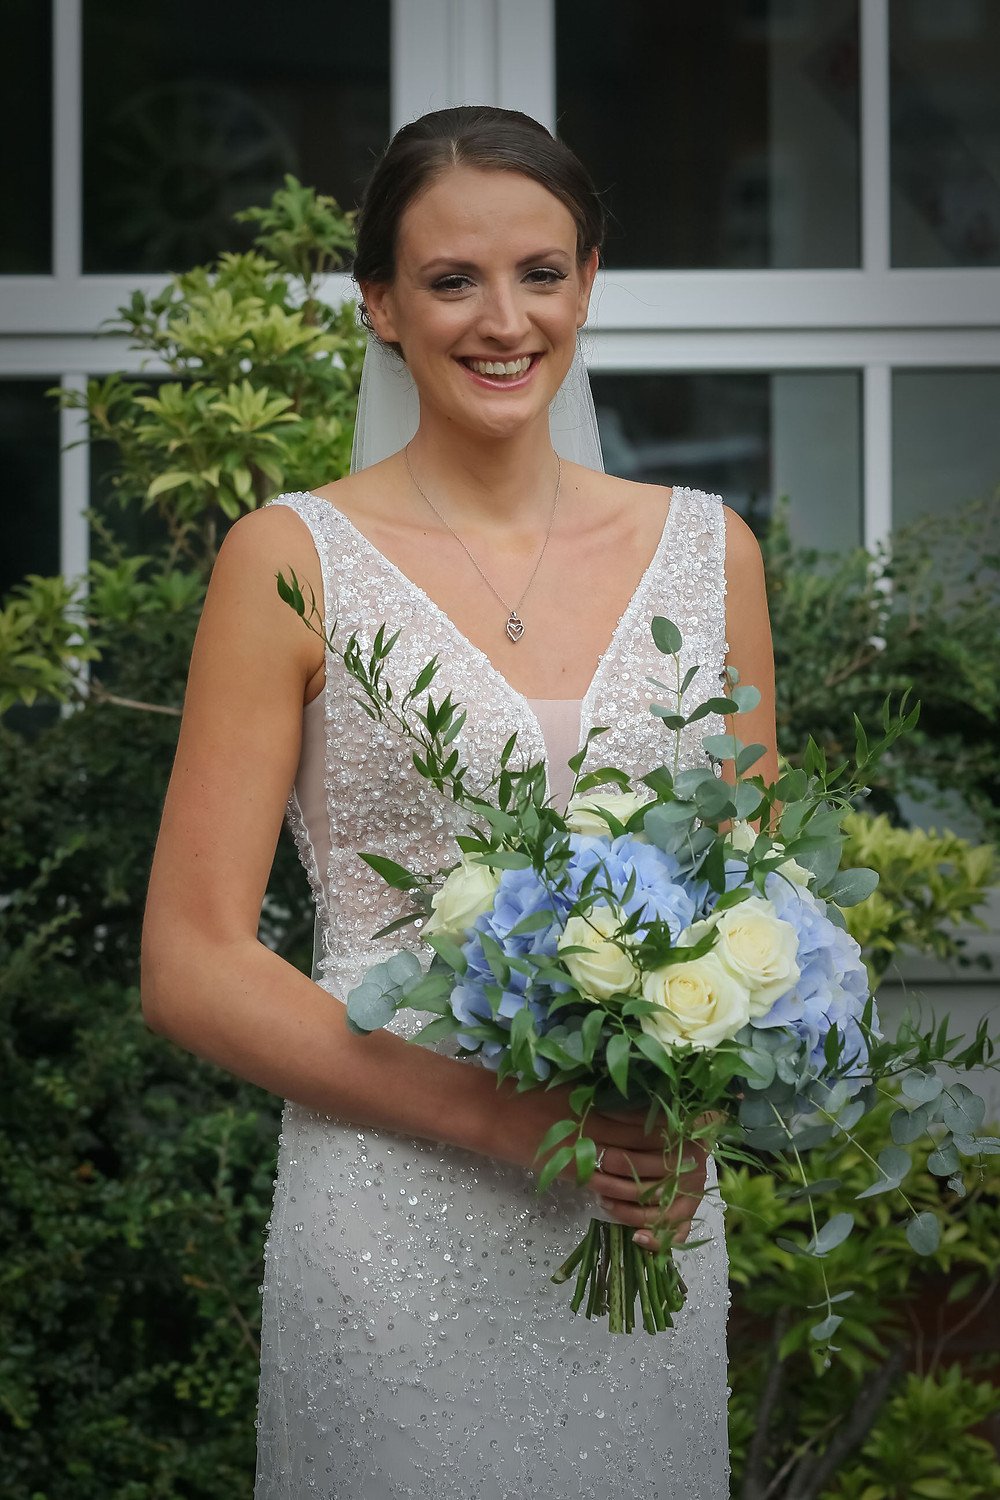 Cheshire Wedding Photography by Paul Kyte